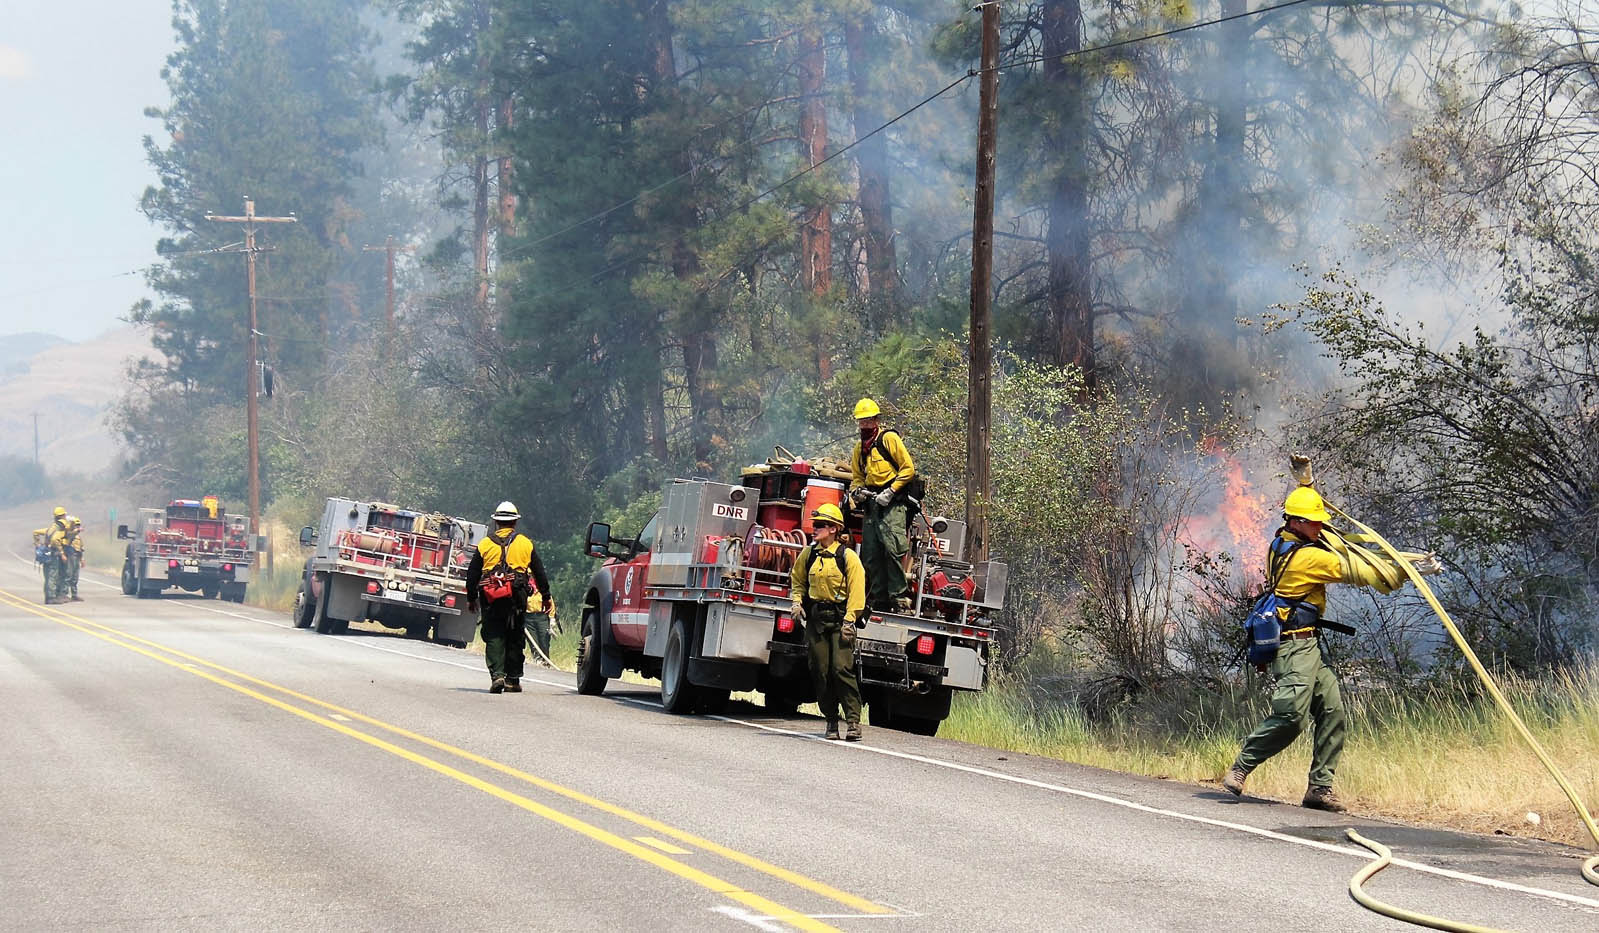 Three DNR fire rigs stay close to the roadside flames as they more north along Highway 153.